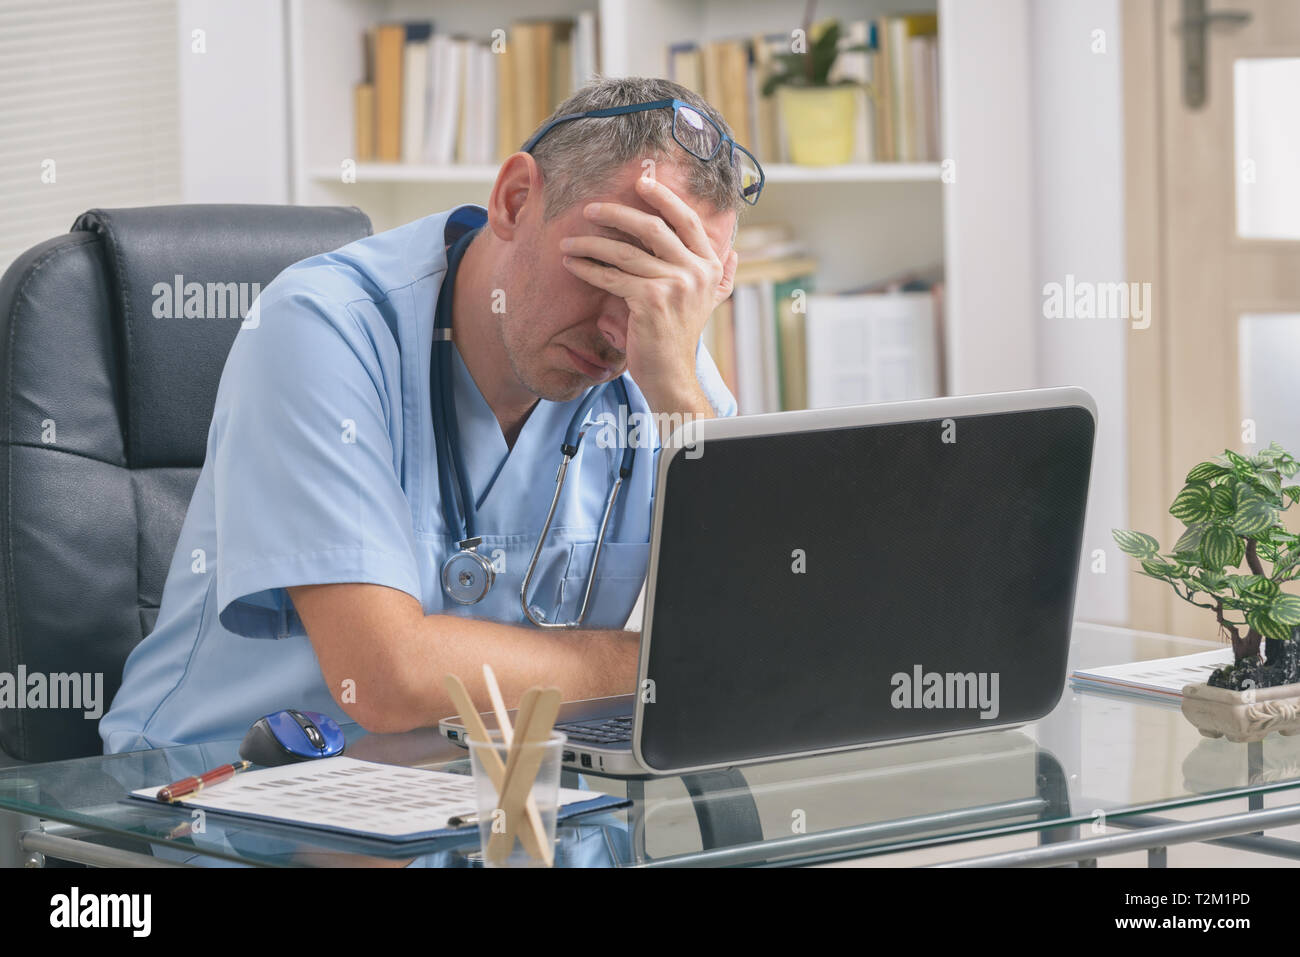 Overworked doctor sitting in his office - Stock Image